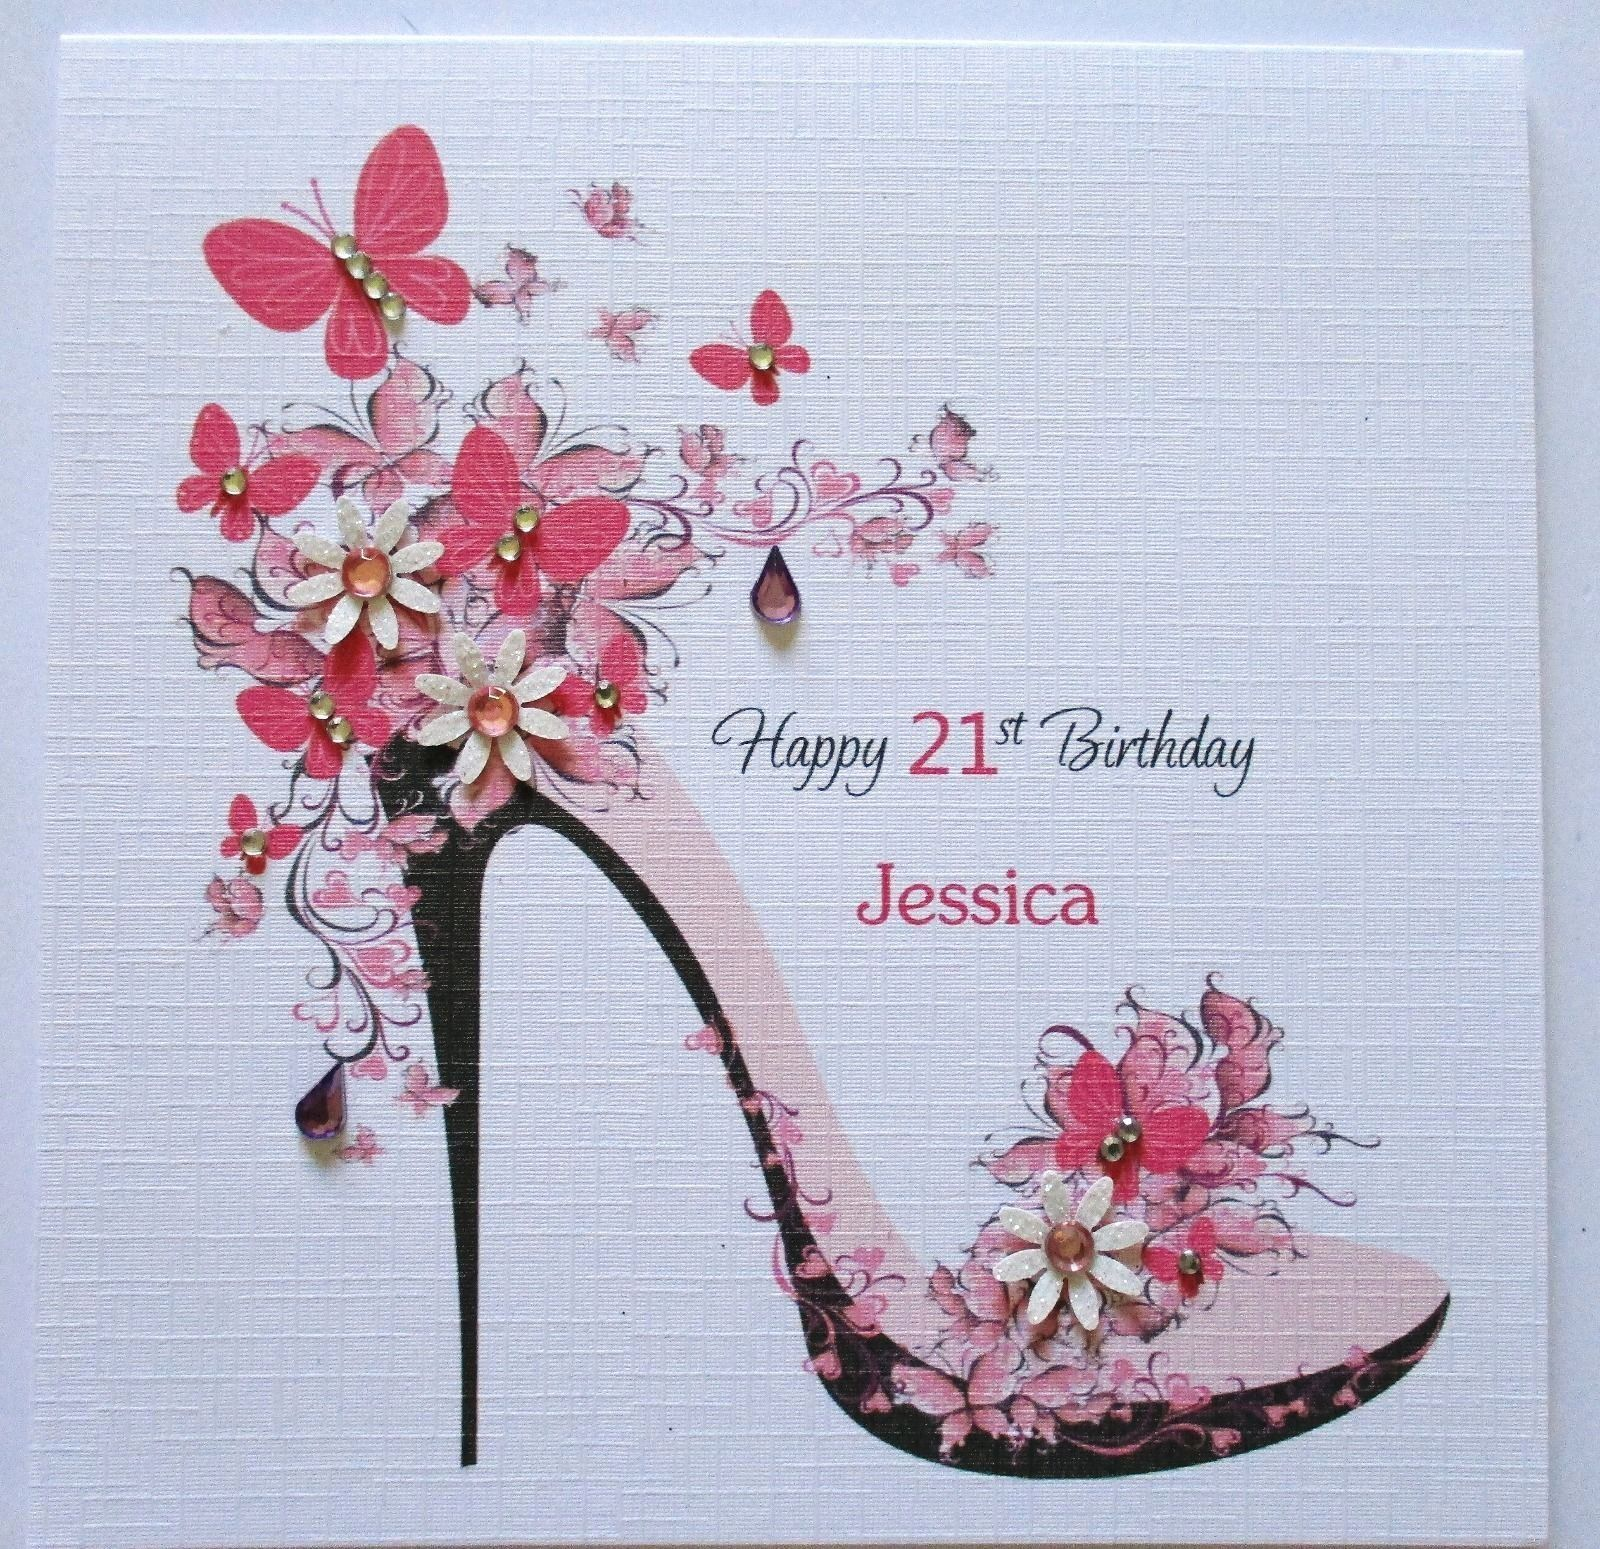 Birthday Greetings For Women Unique Handmade Personalised Female Birthday Card 18th 21st 30th Birthday Cards For Women 21st Birthday Cards 18th Birthday Cards